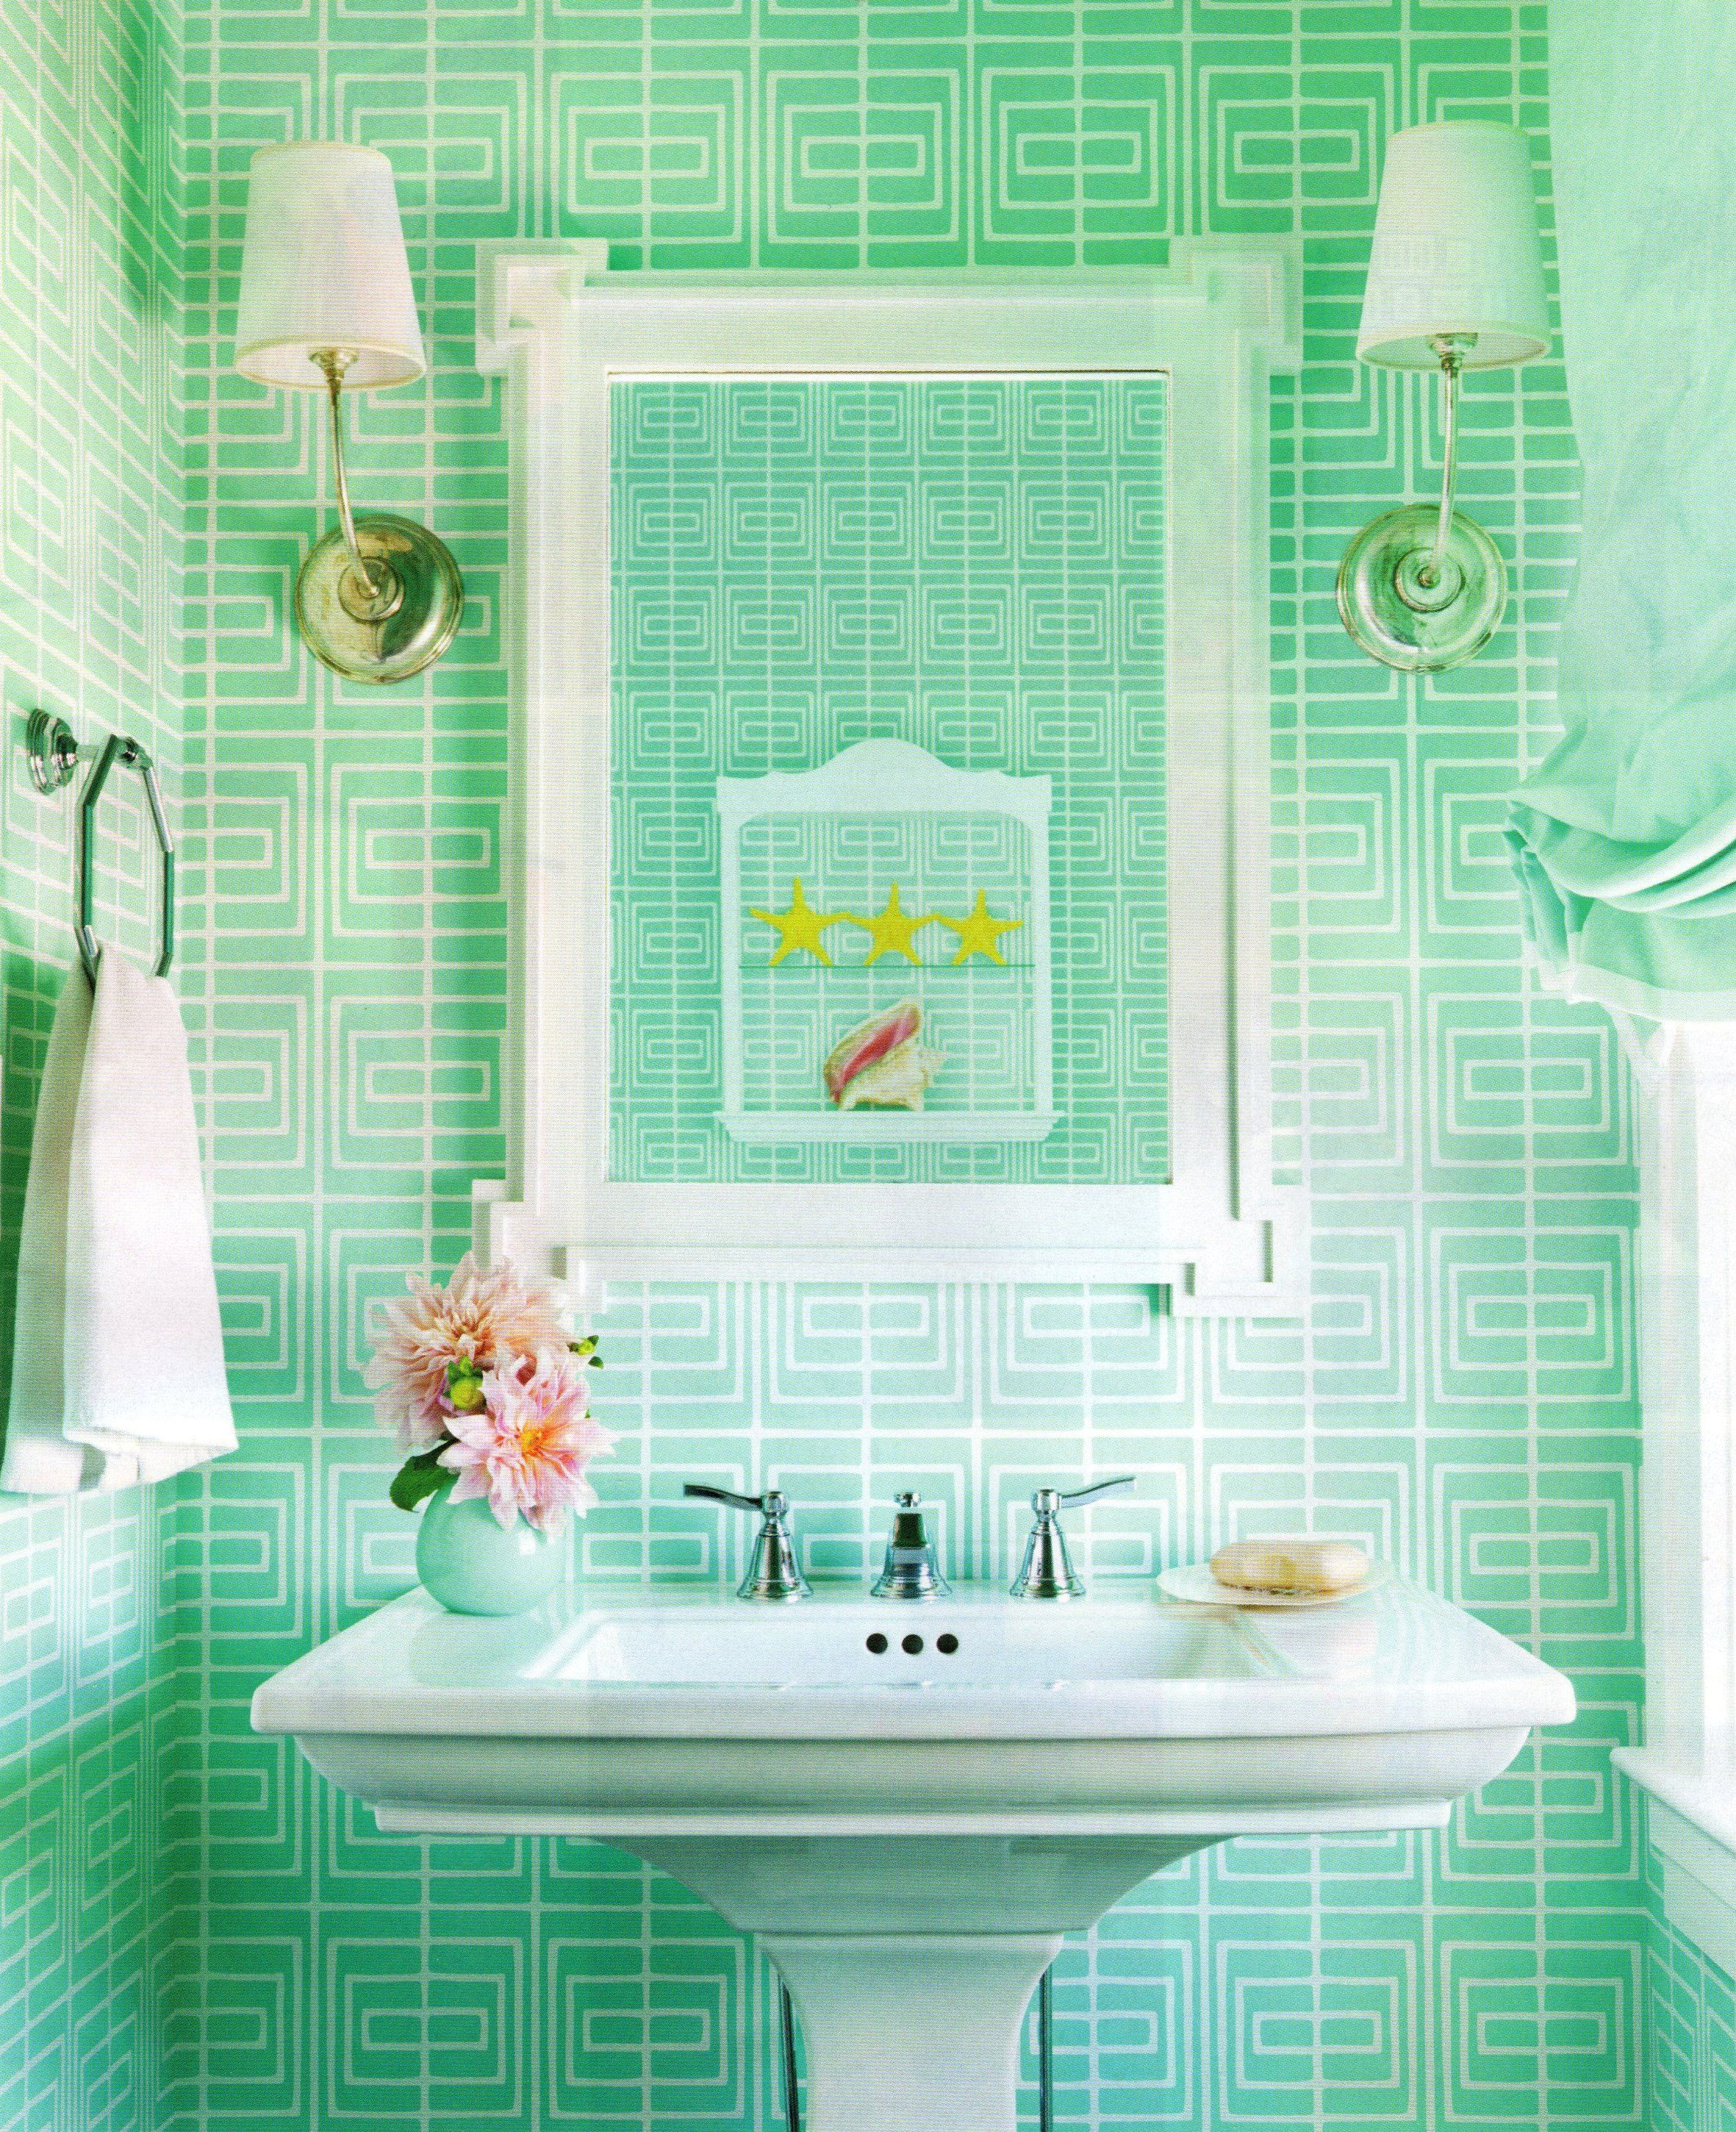 Bright Green Bathroom Tiles Bring A Pretty Pop Of Fun Colors Bathrooms Tile Colorful Decor